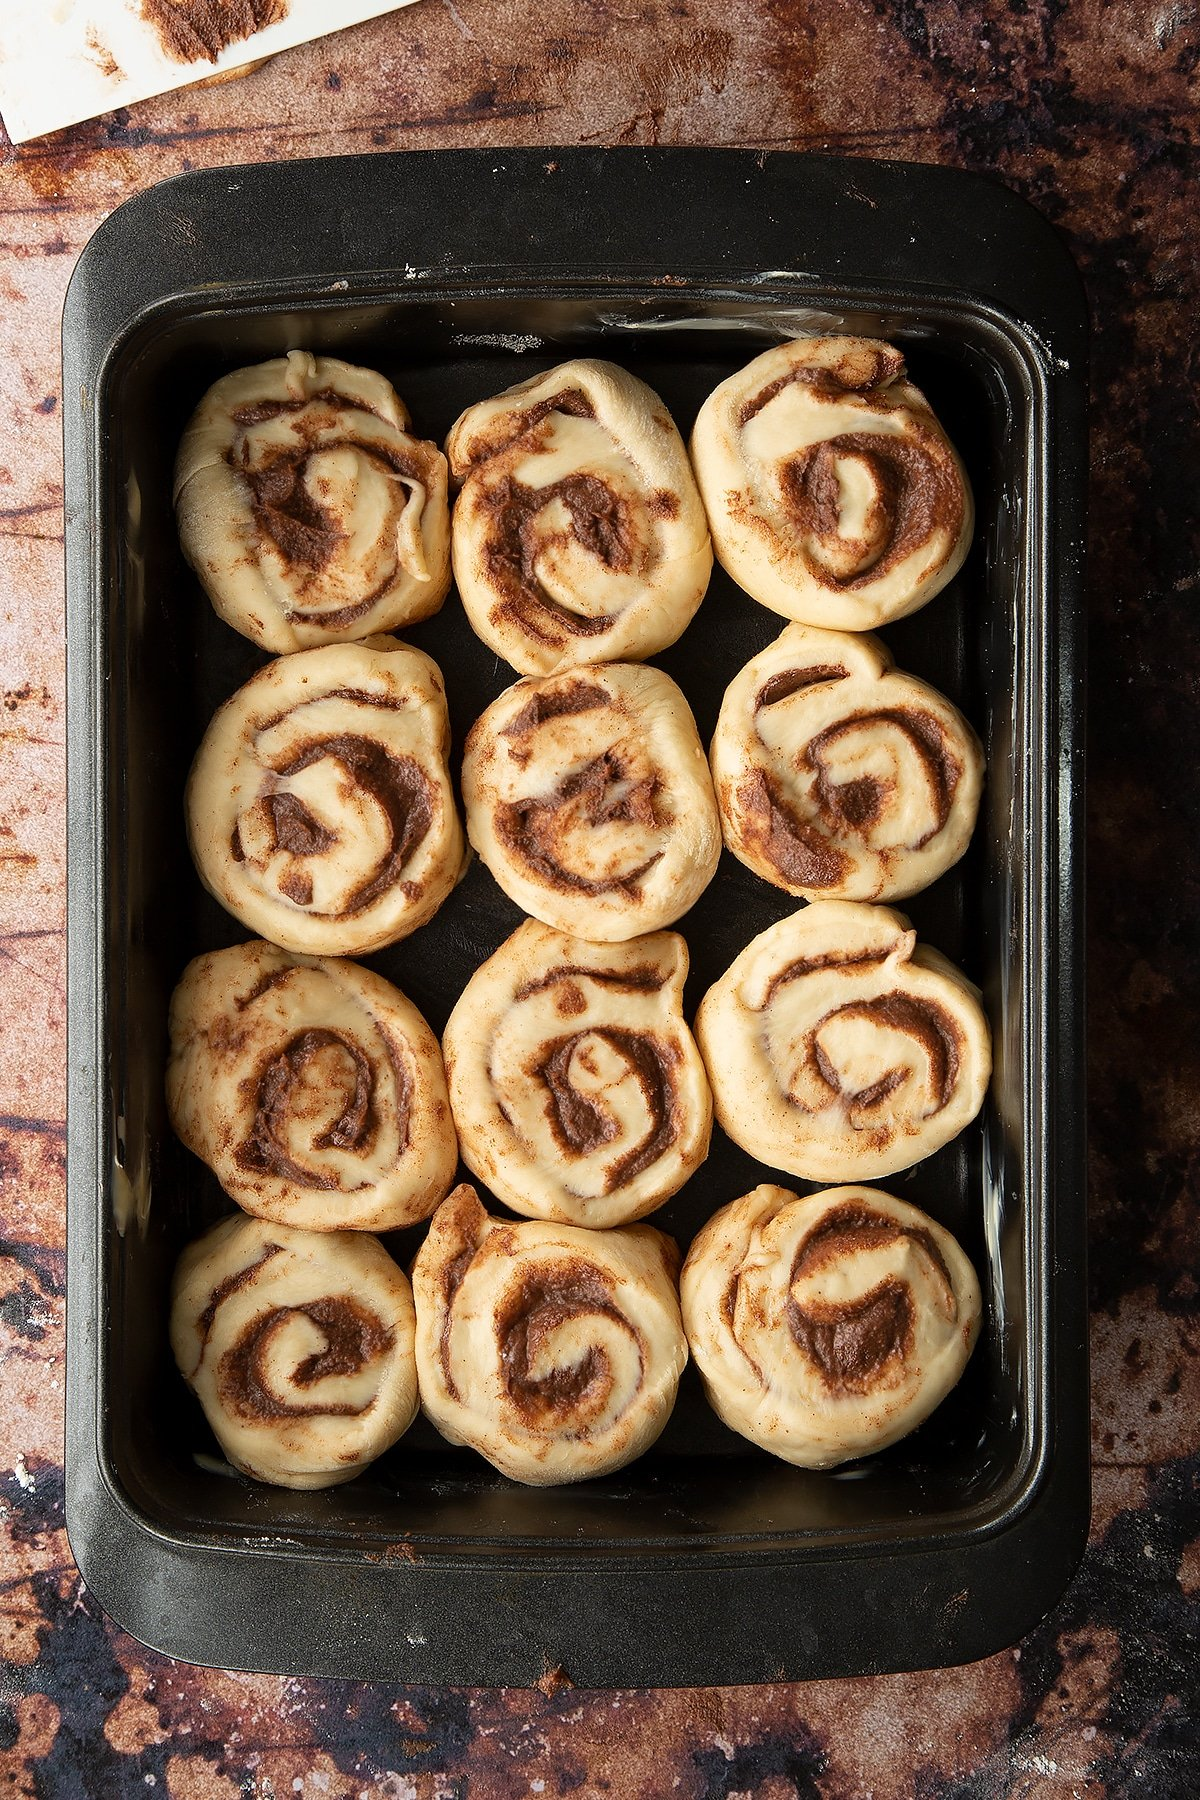 Overhead shot of dough rolled up into sections laid out in a deep baking tray